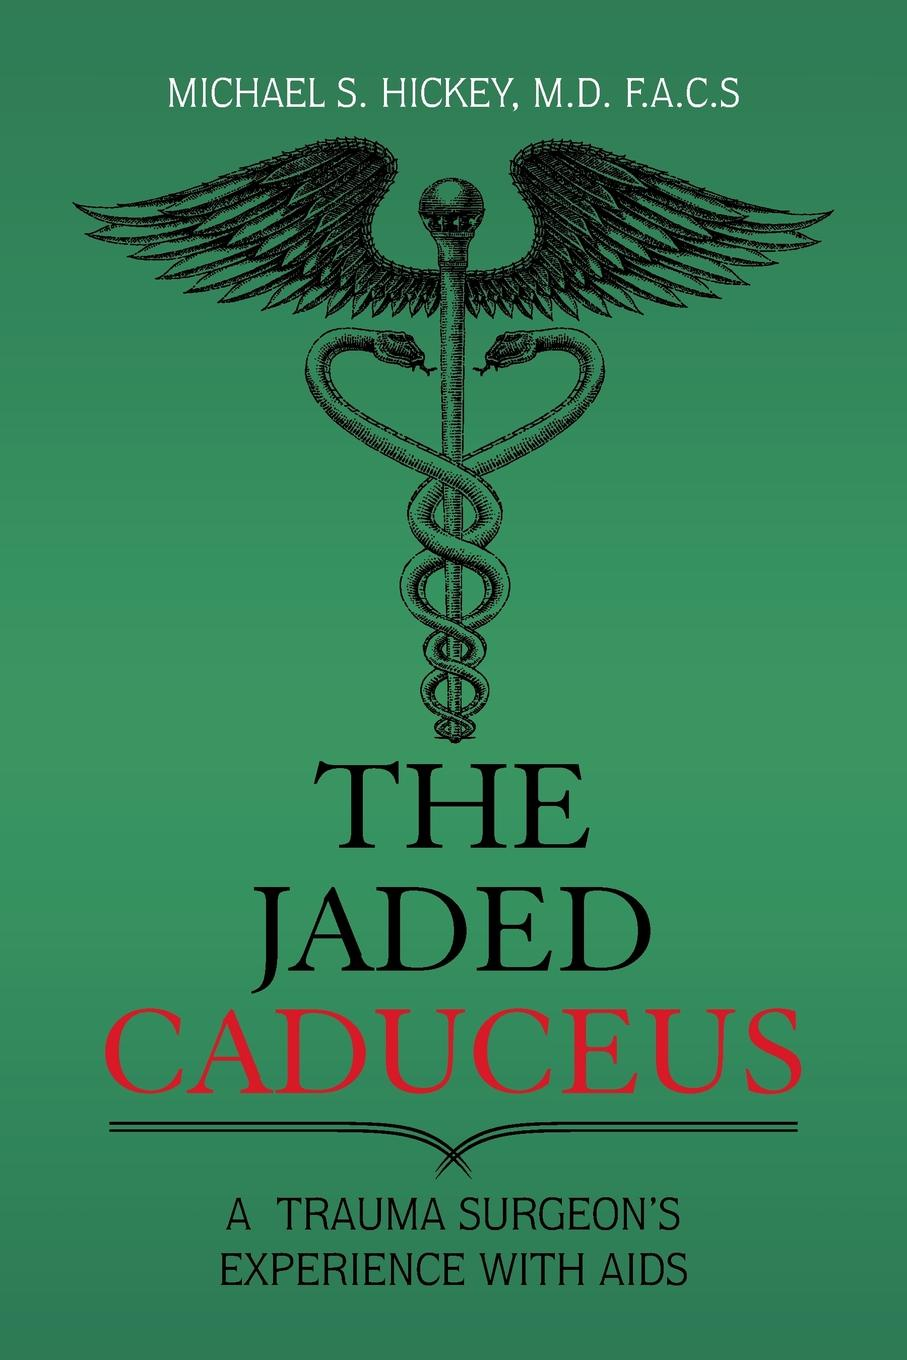 Michael S. Hickey M.D. F.A.C.S The Jaded Caduceus. A Trauma Surgeon.s Experience with Aids heidi hormel the surgeon and the cowgirl